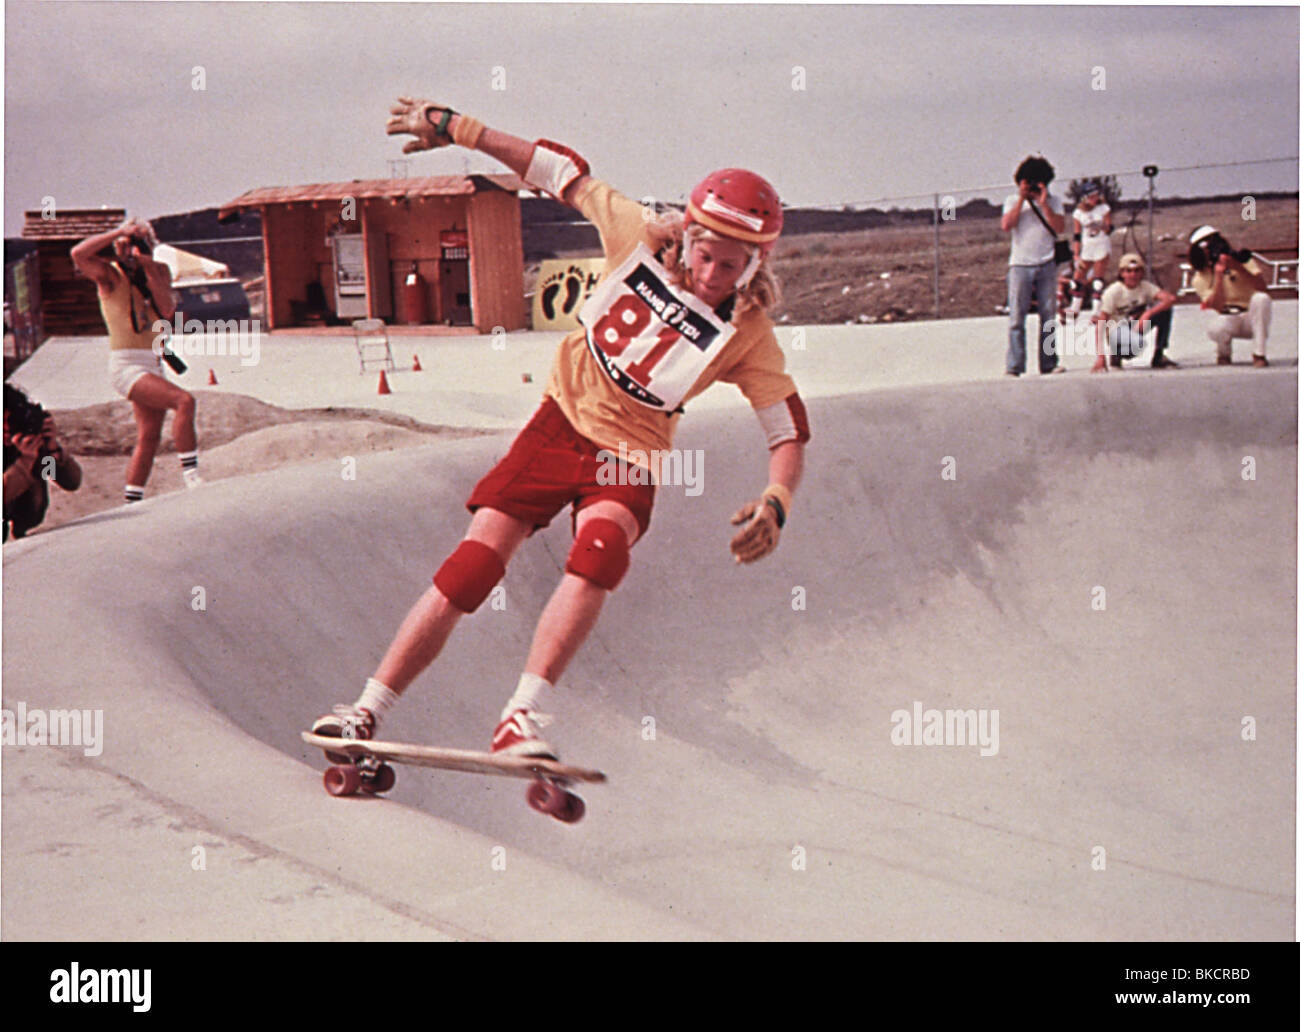 DOGTOWN AND Z-BOYS (2001) STACY PERALTA (DIR) DAZB 007 Stock Photo